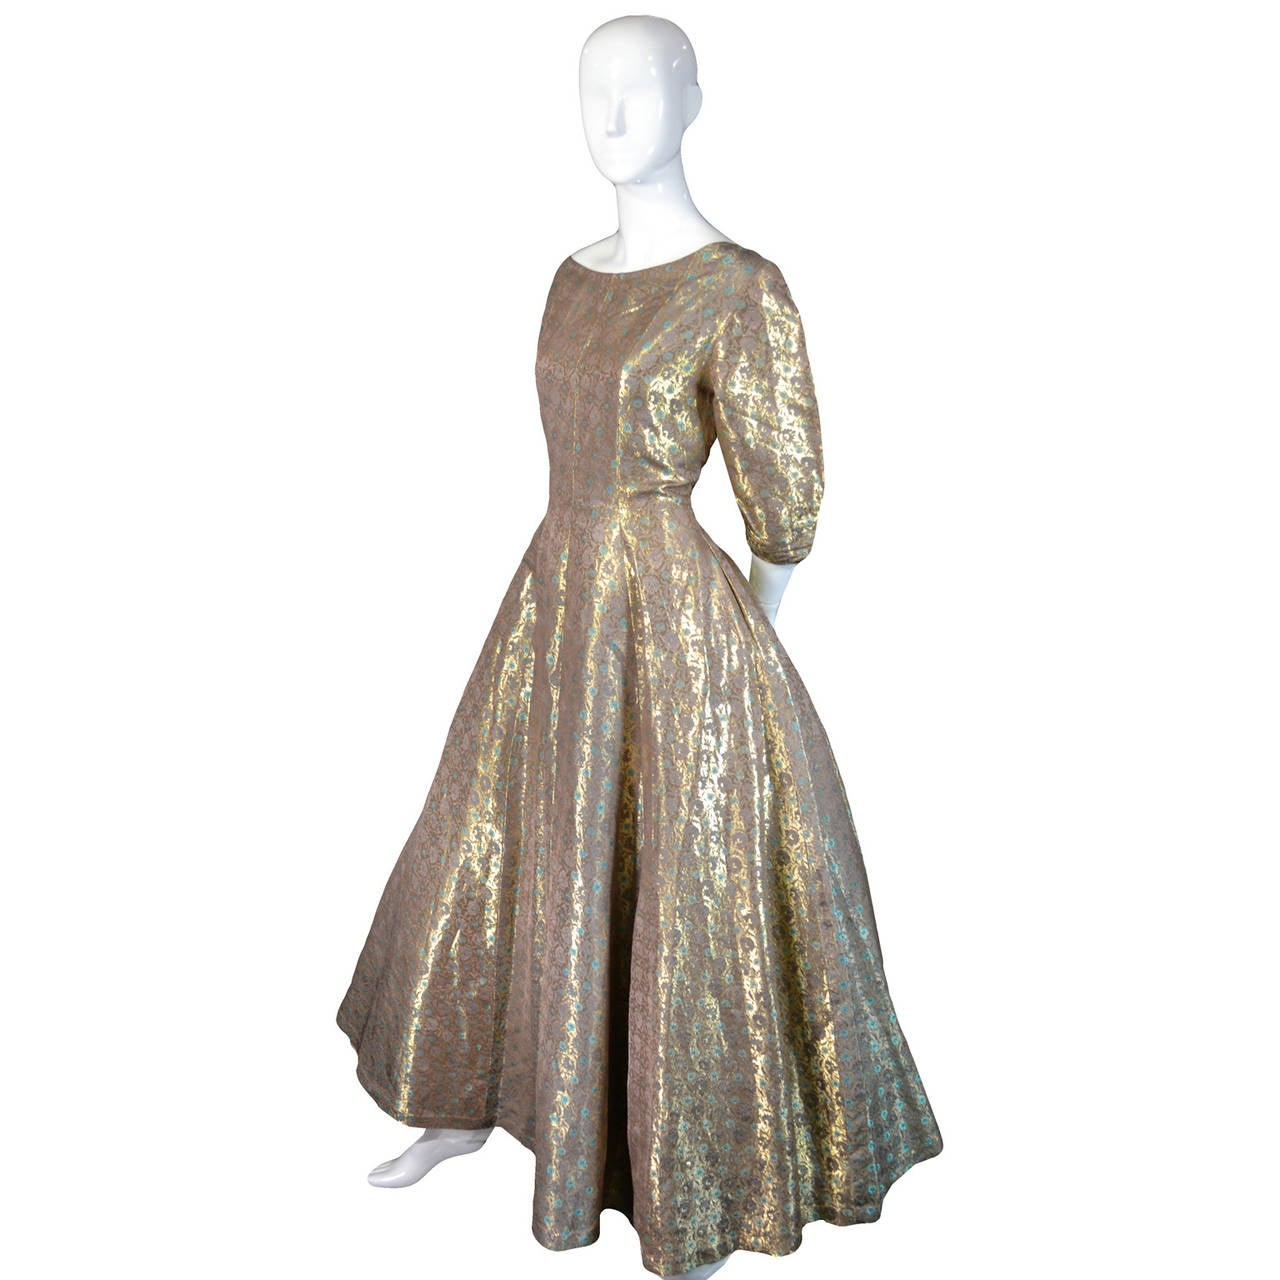 Hattie Carnegie 1950s Vintage Dress Gold Metallic Lame Blue Floral Evening Gown 5